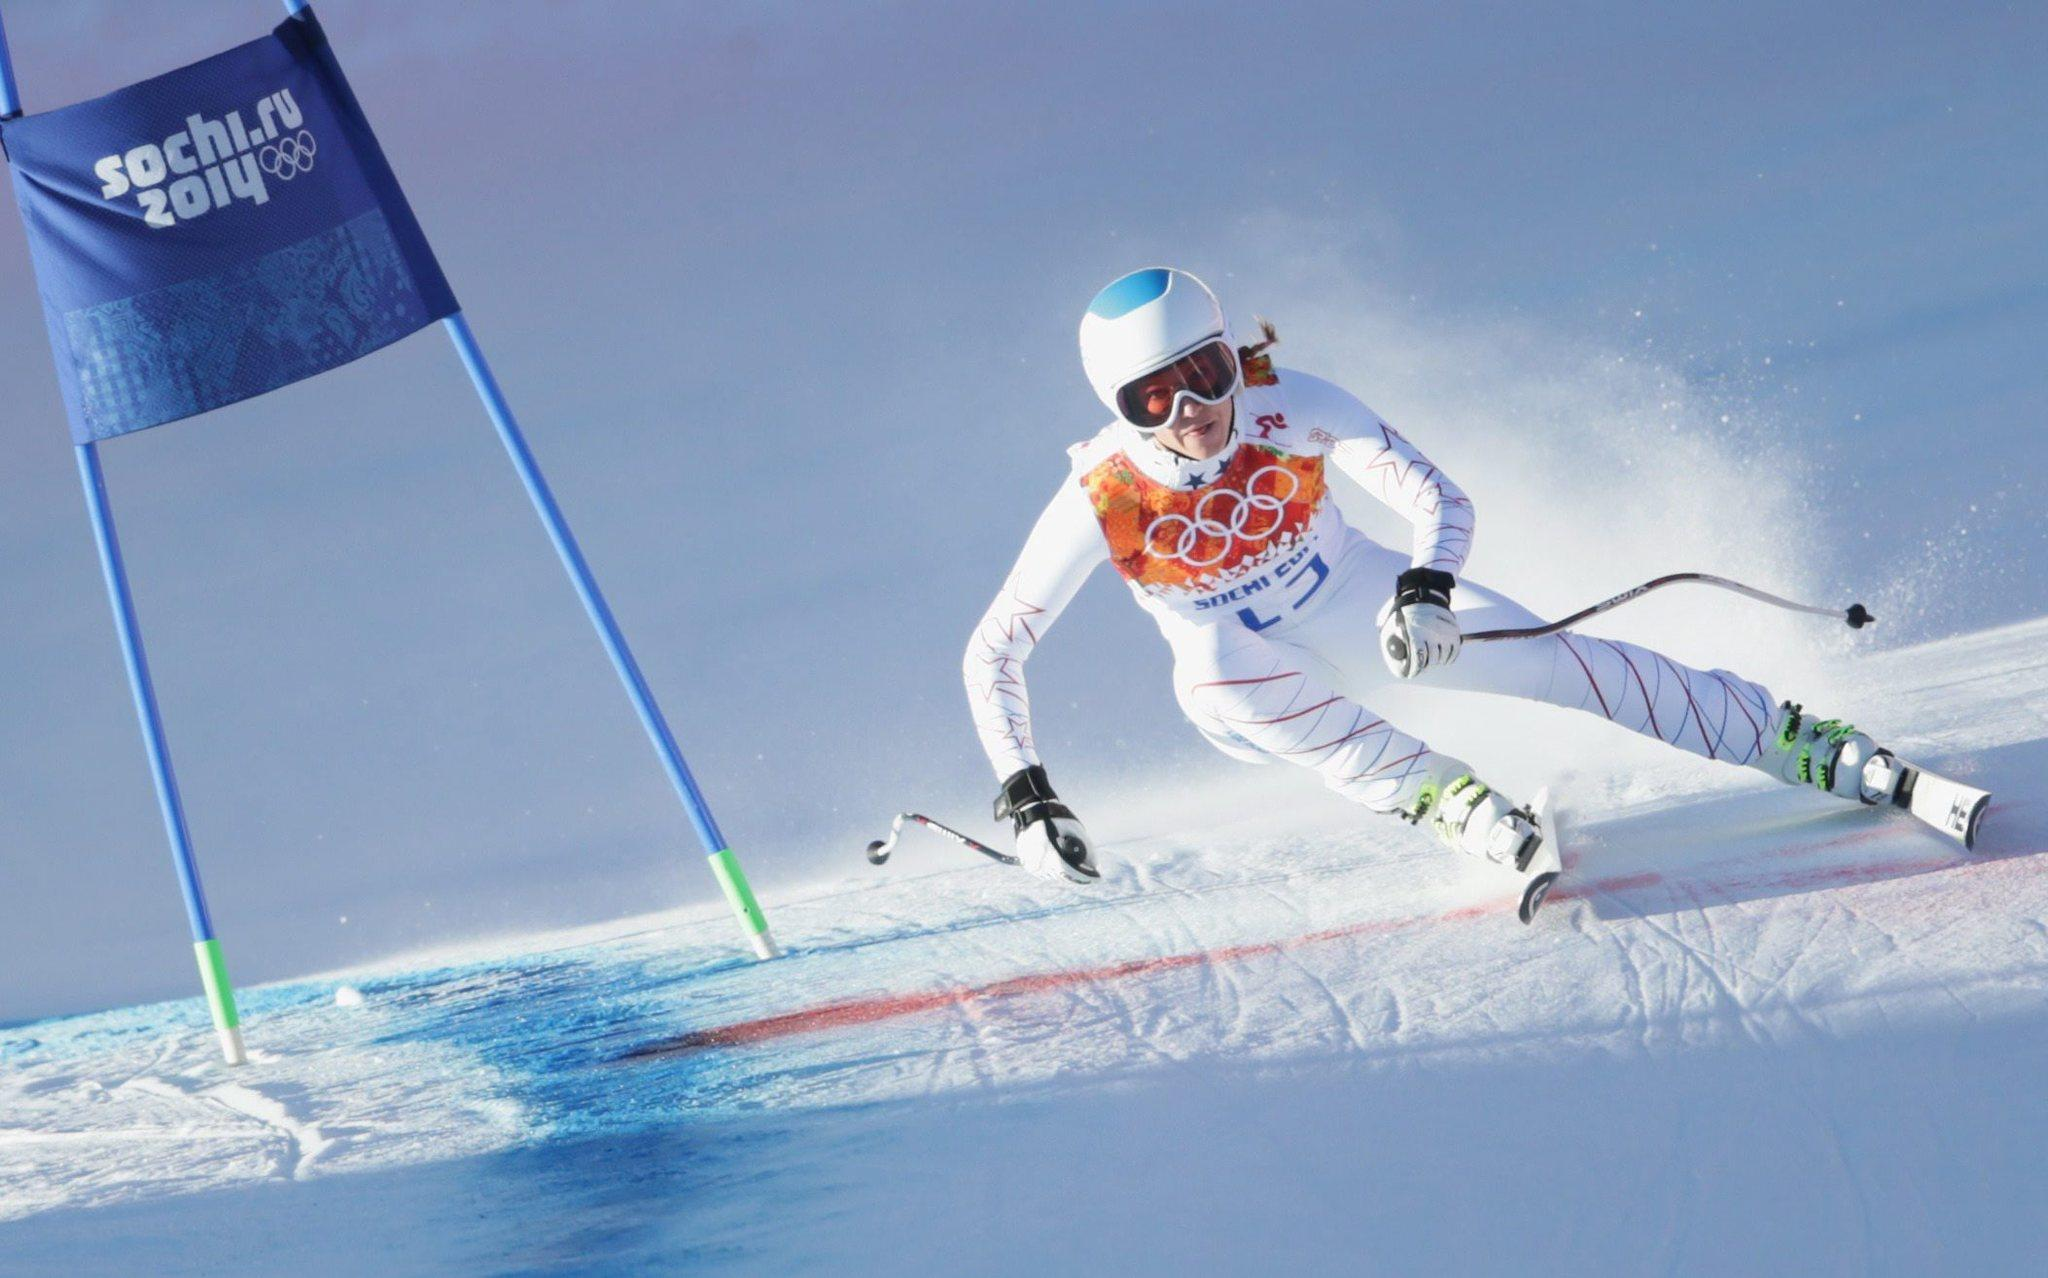 Julia Mancuso during downhill training in Rosa Khutor Alpine Center.